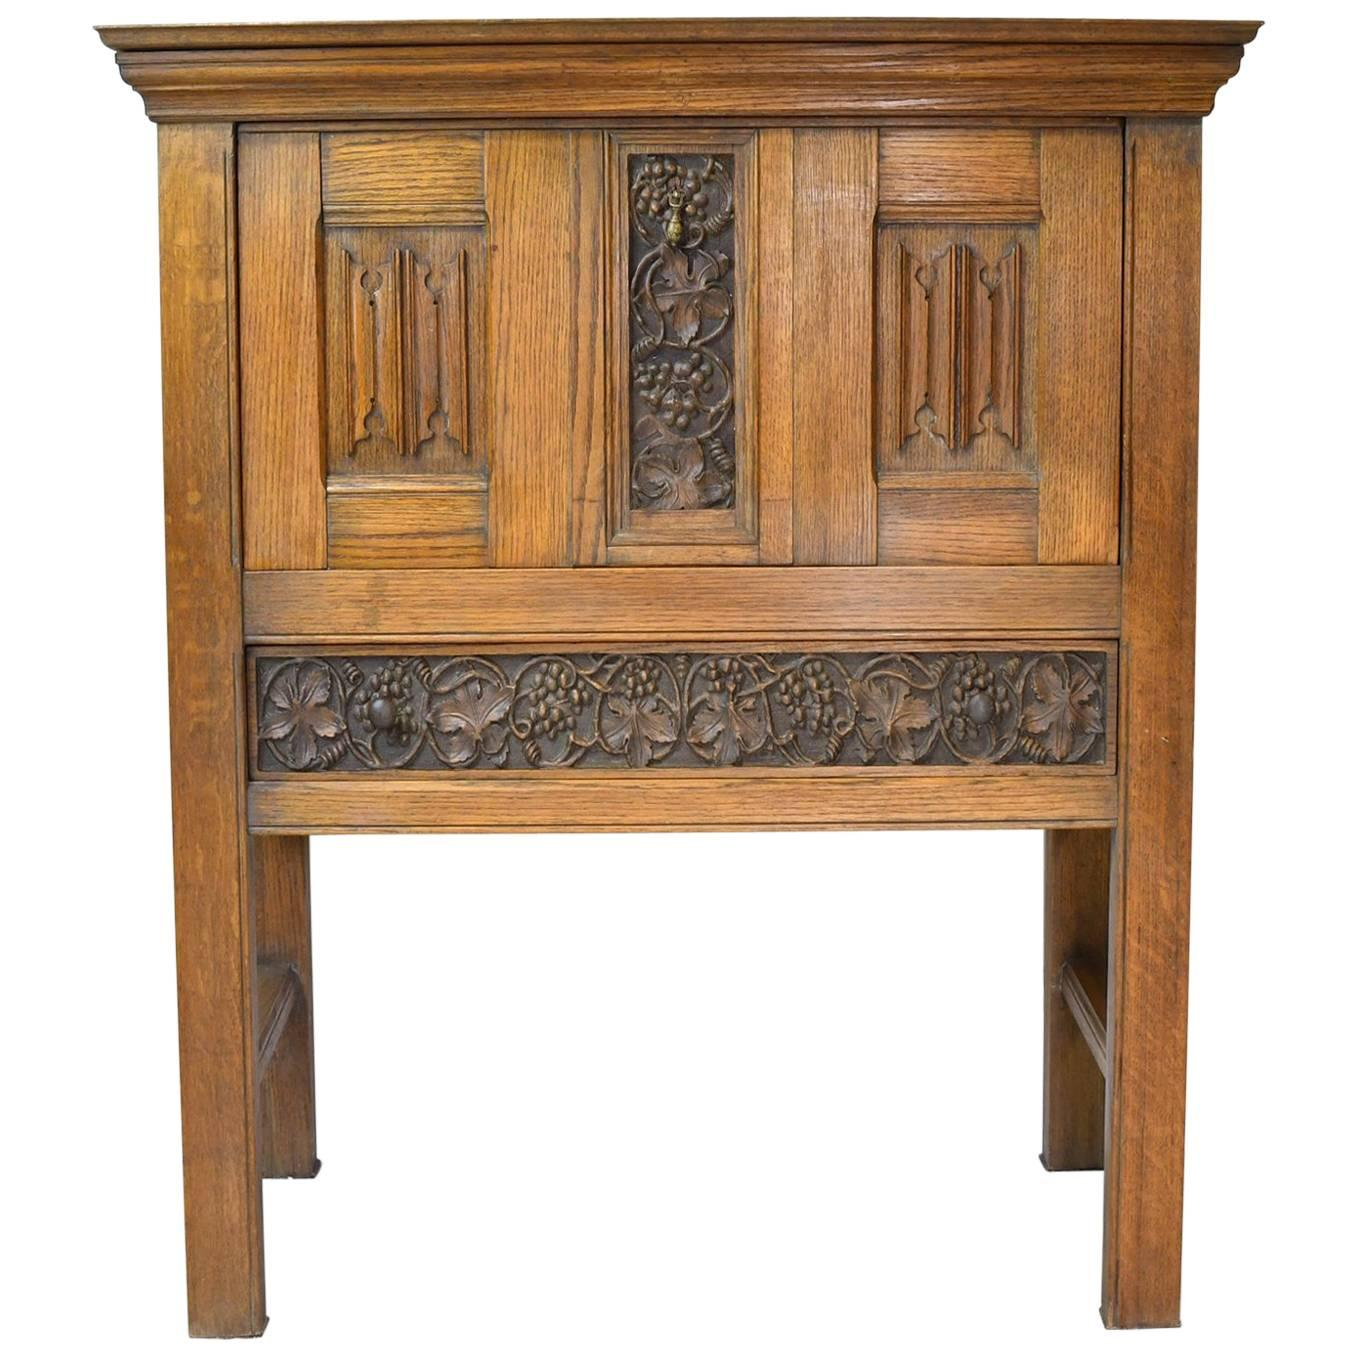 Early 20th Century Arts & Crafts Bar Cabinet in Oak with Carved Panels